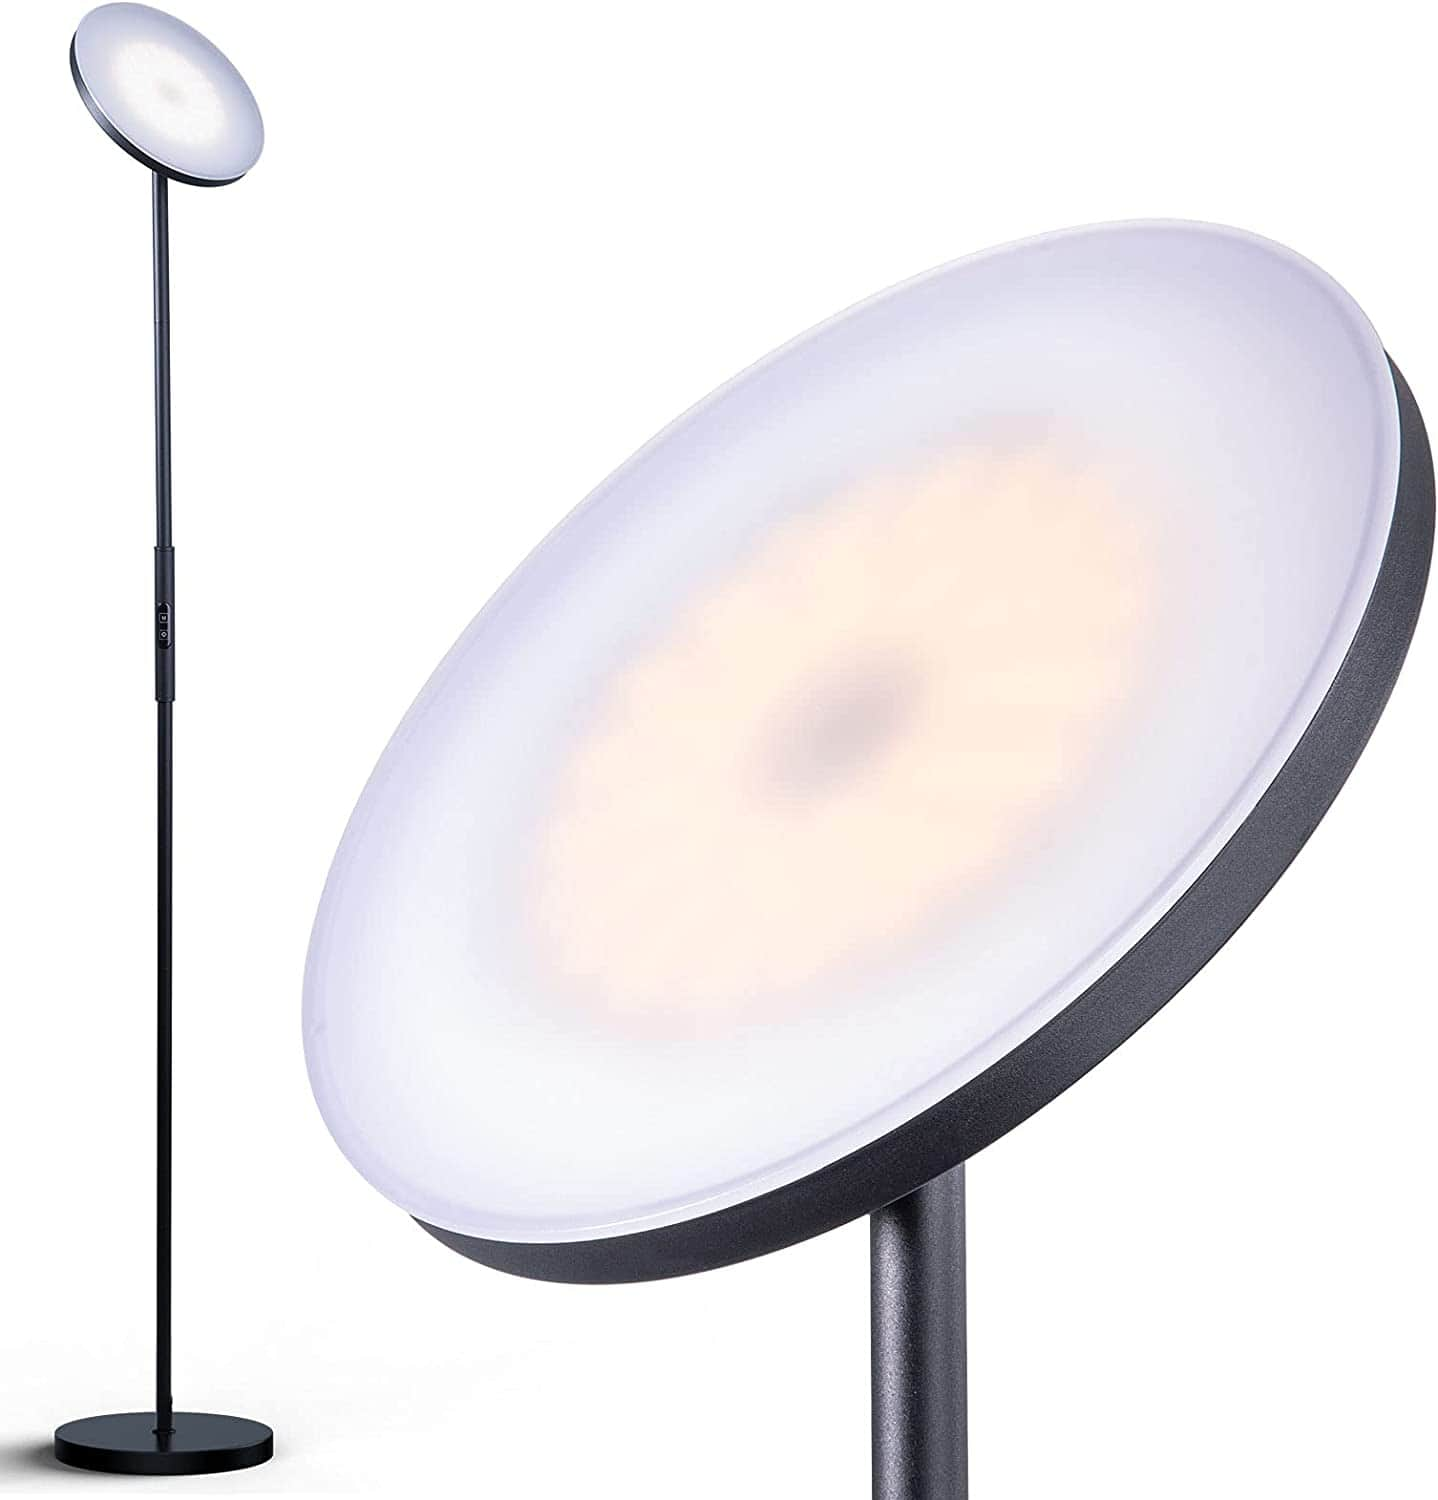 Addlon LED Torchiere Floor Lamp (Dimmable) for $24.99 + Free Shipping